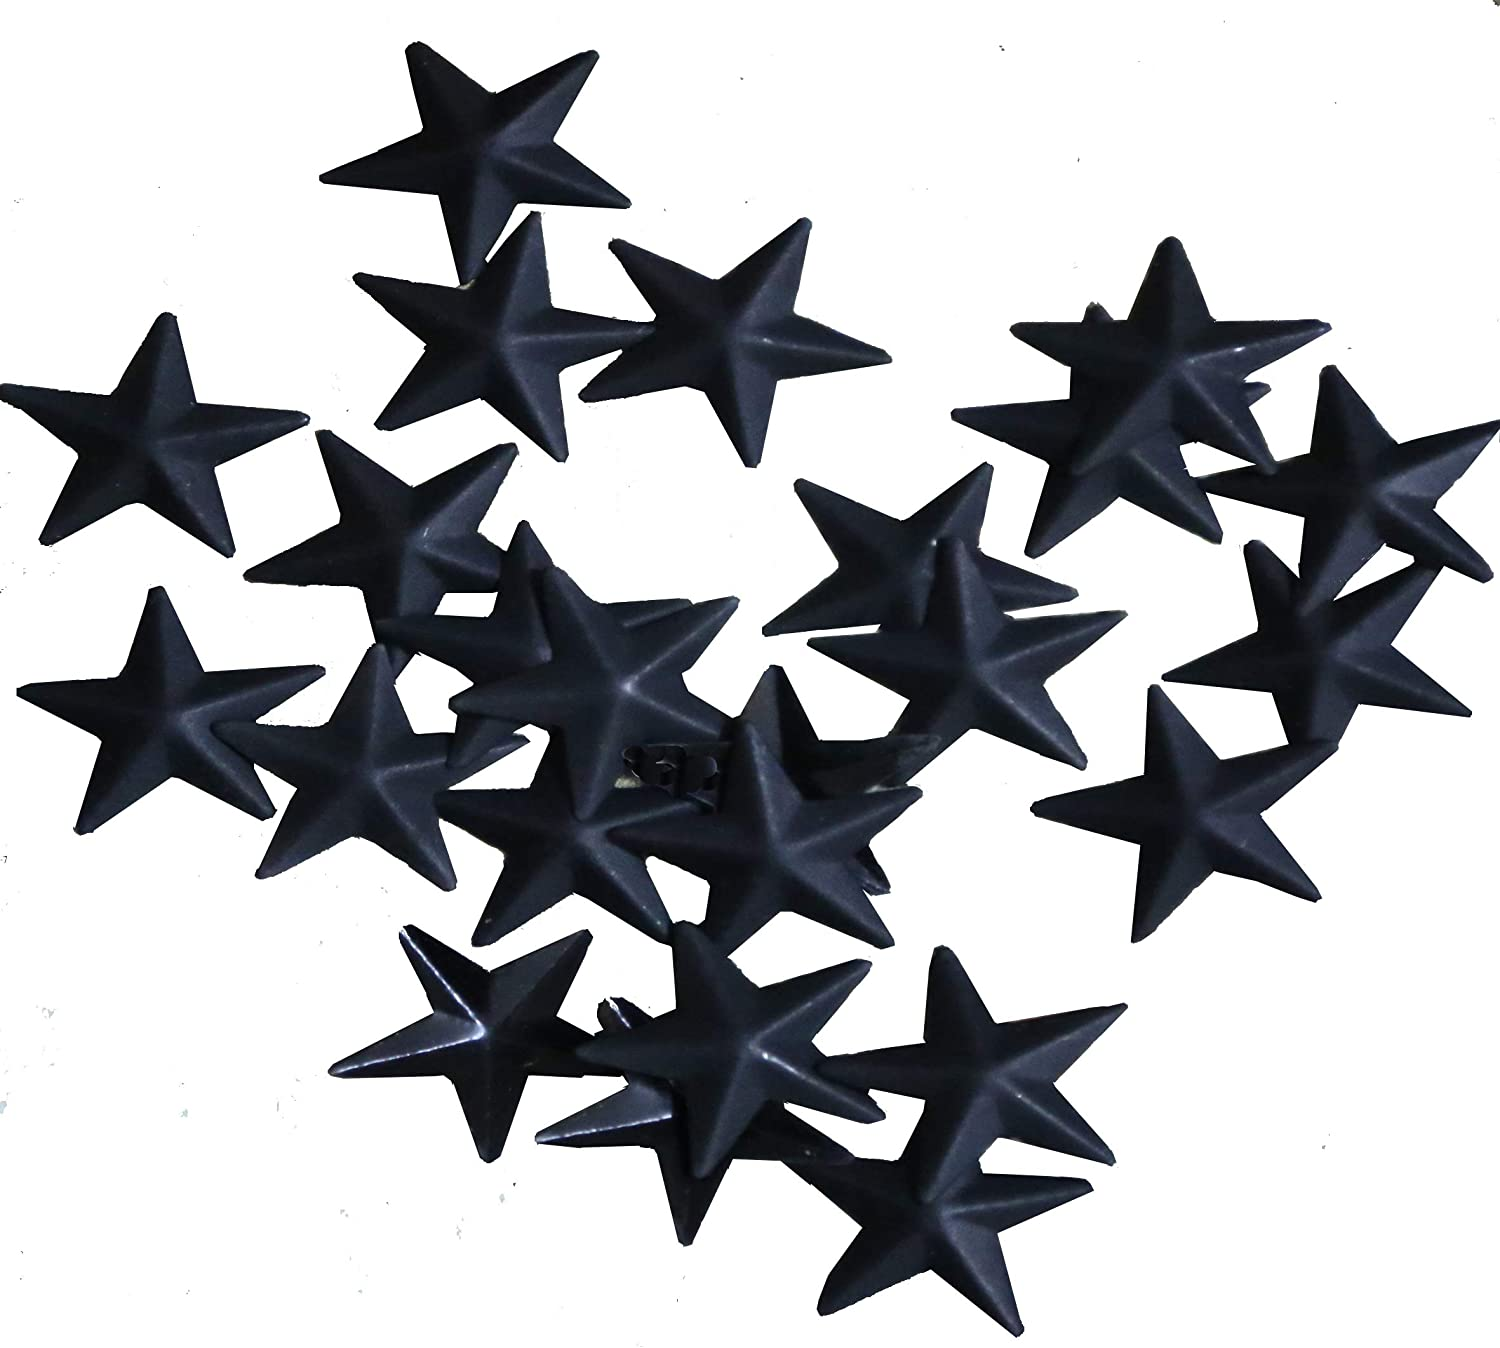 TAIANLE.Small Vintage Metal Barn Star,Black Color Without Hole,Primitives Rustic Country Décor. Home Decorative, 1-Inch, Set of 24 …